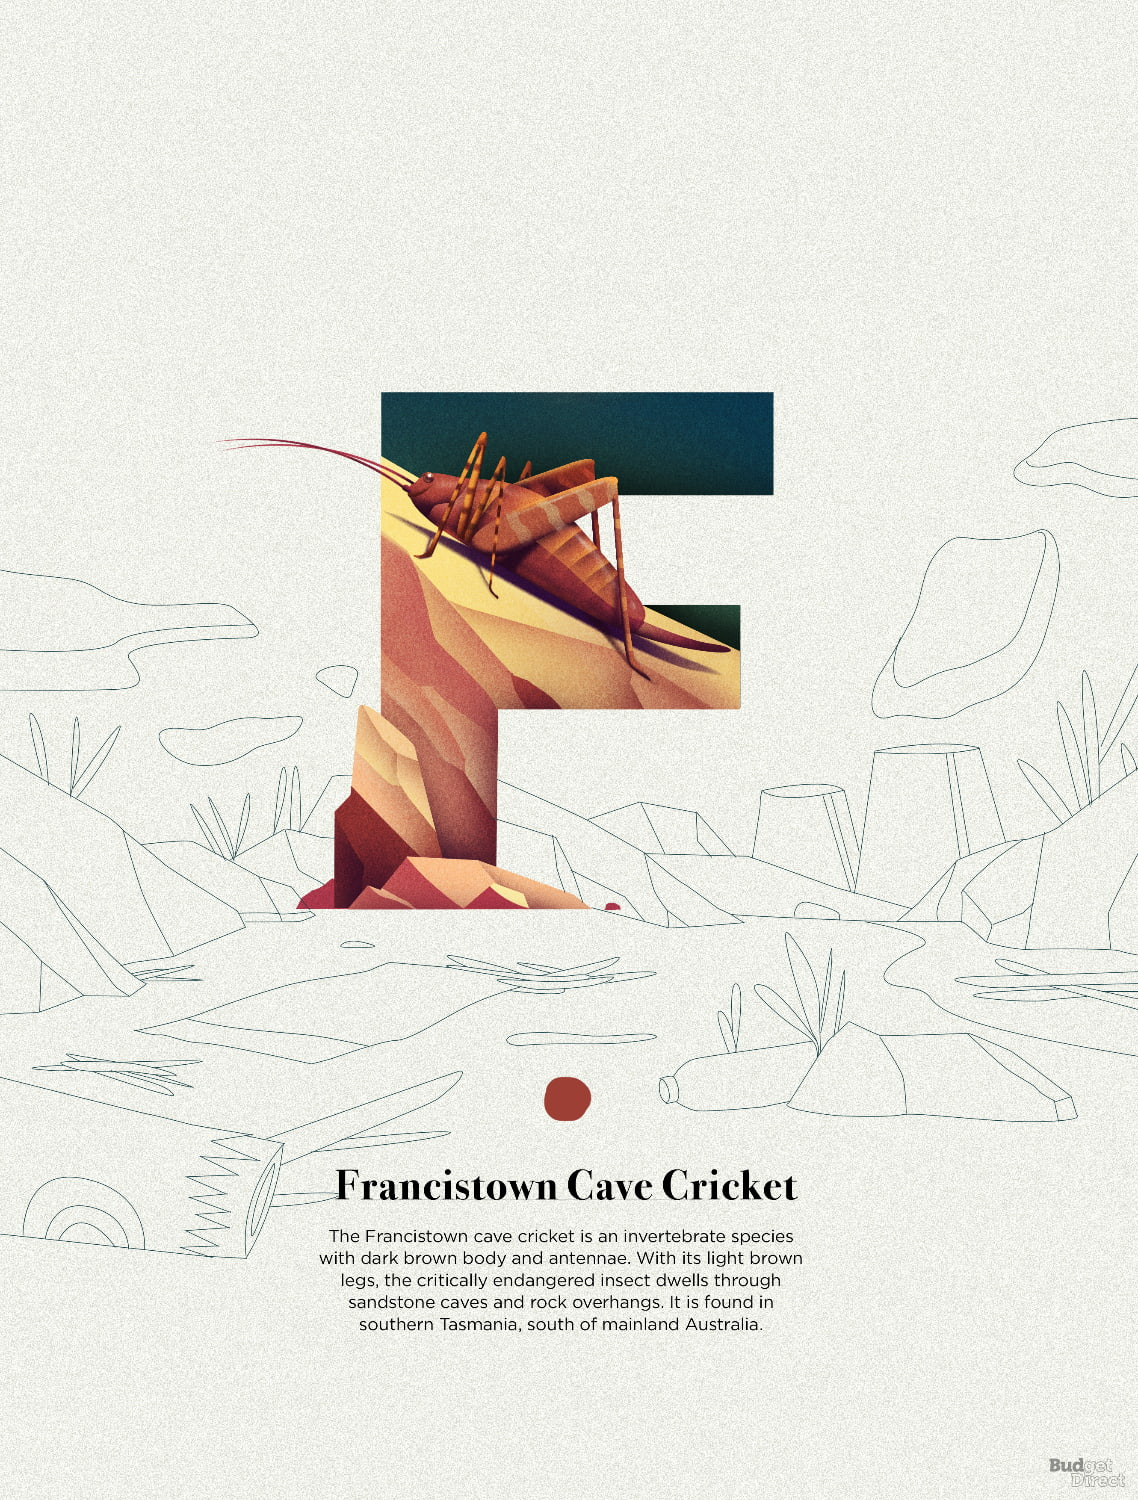 F is for Francistown Cave Cricket